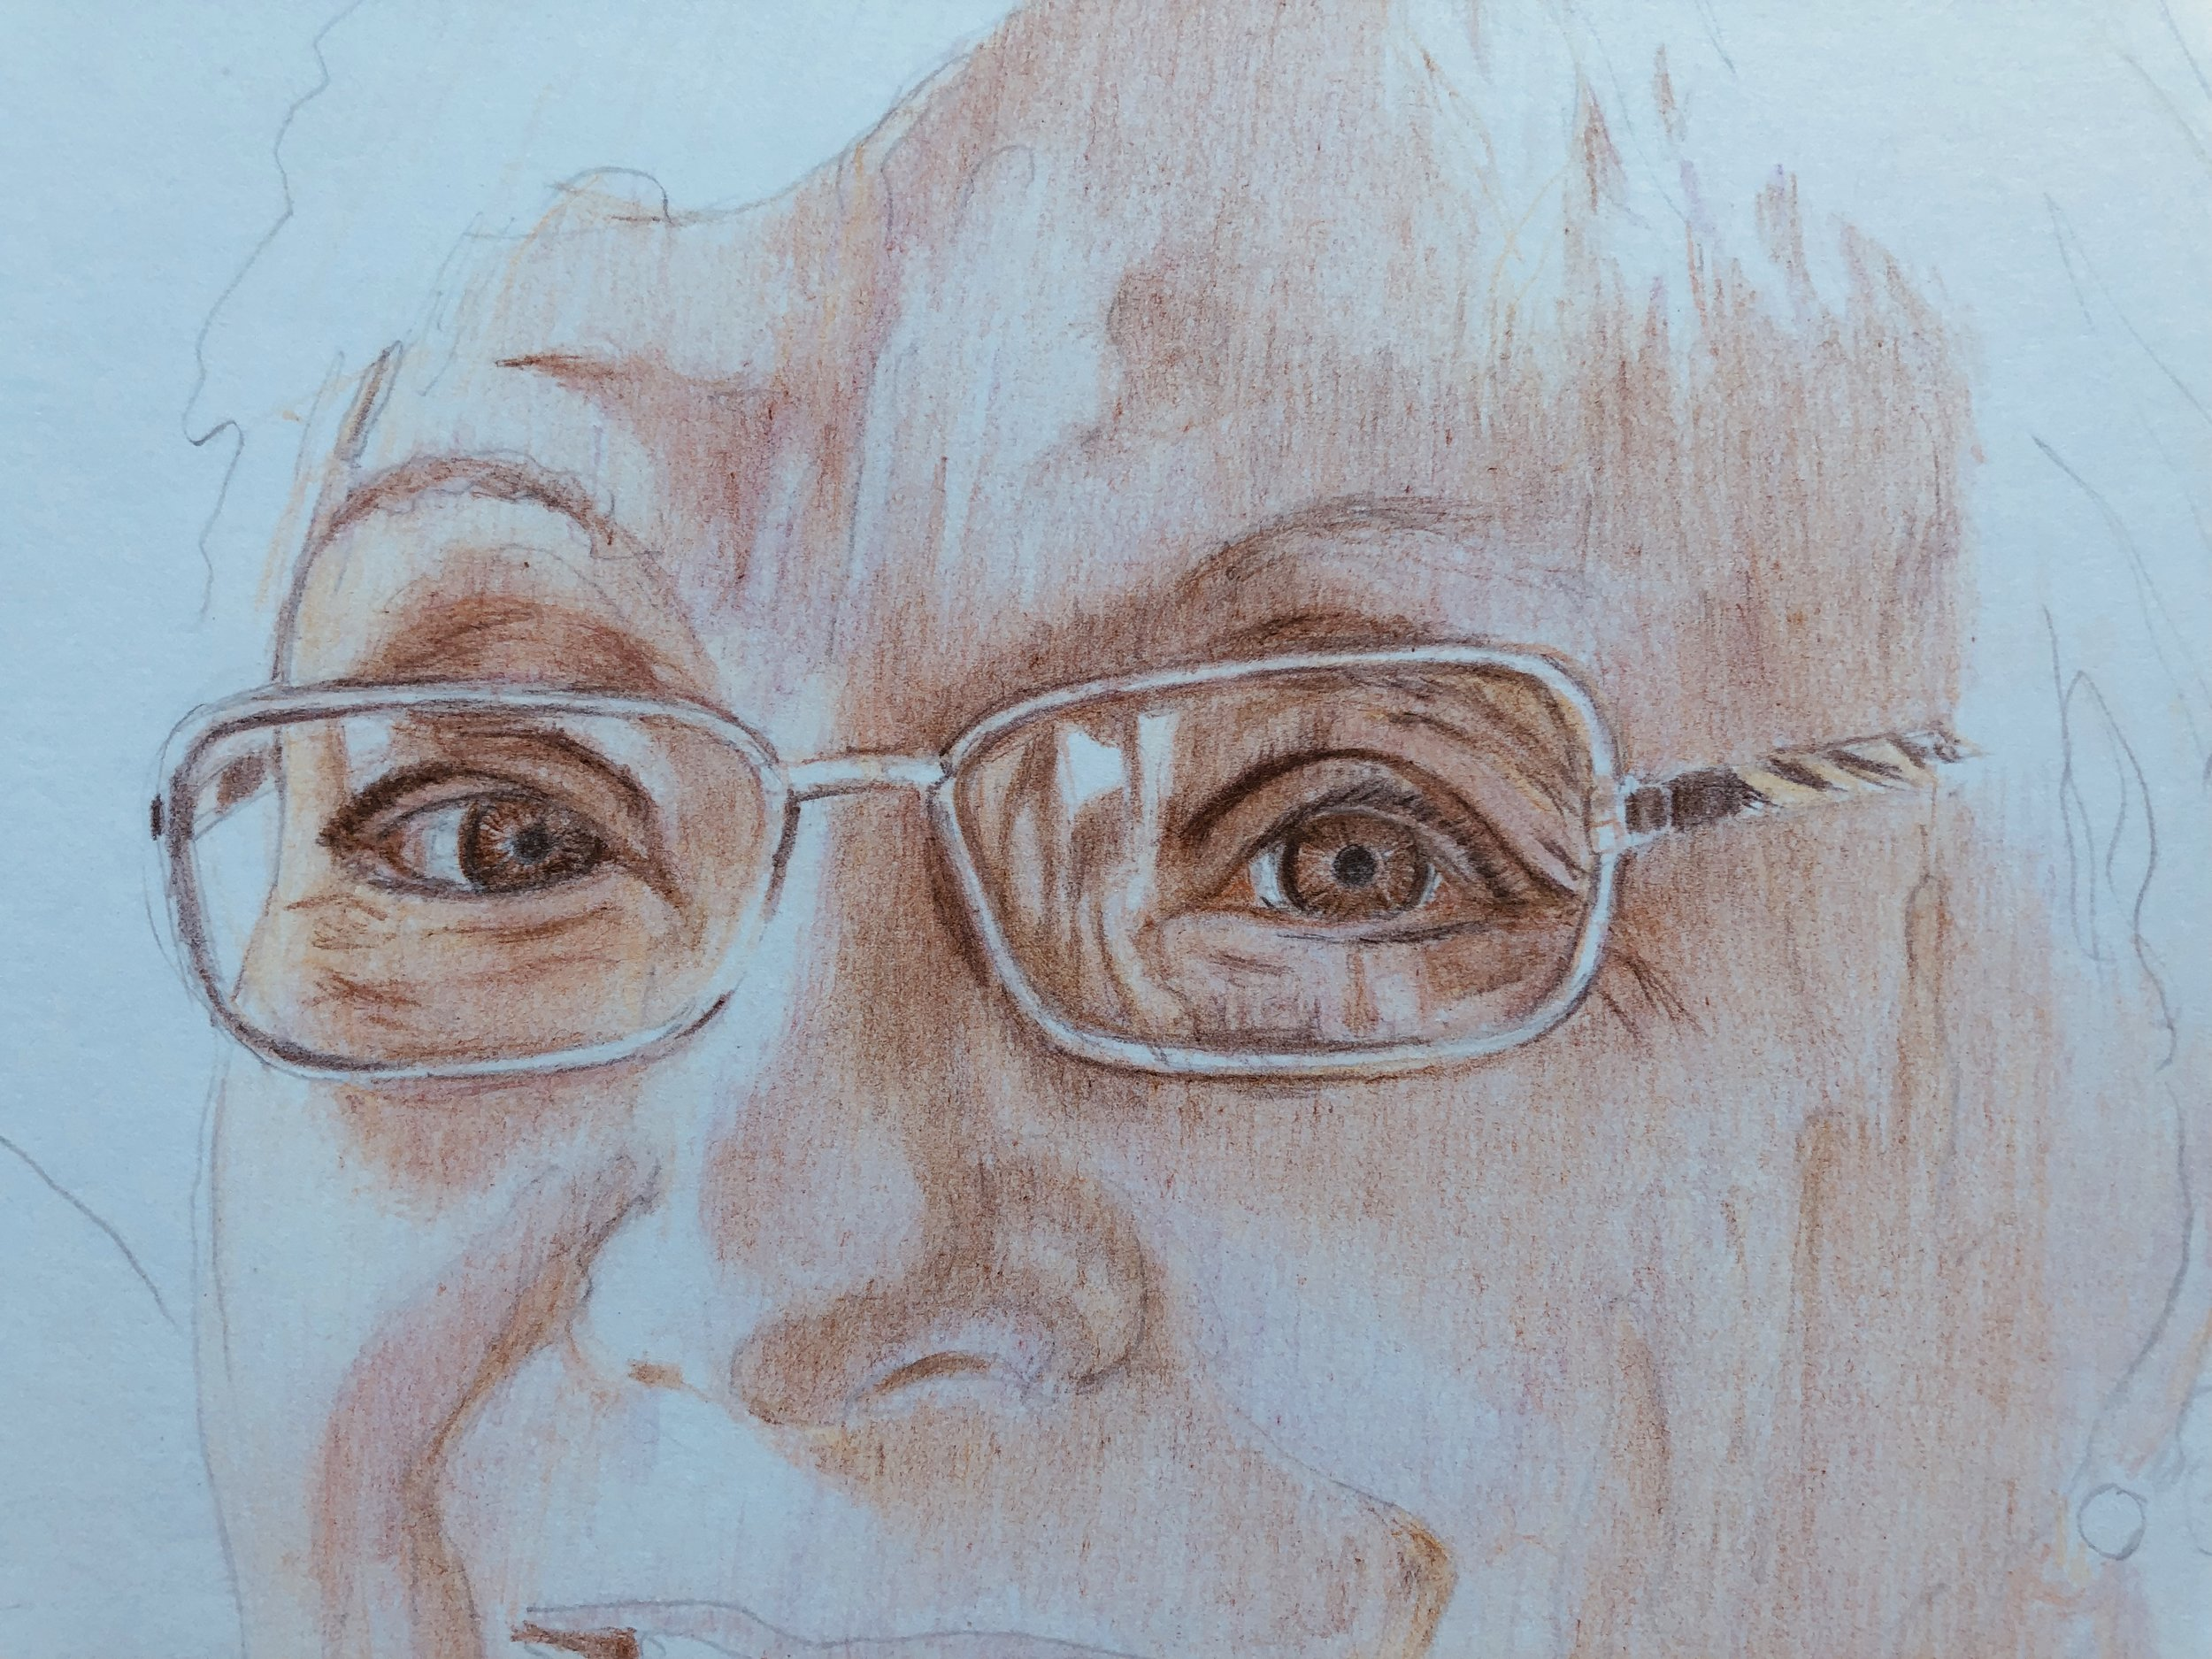 Adding more pinks and defining the eyes, eyeglasses and reflection some more here.